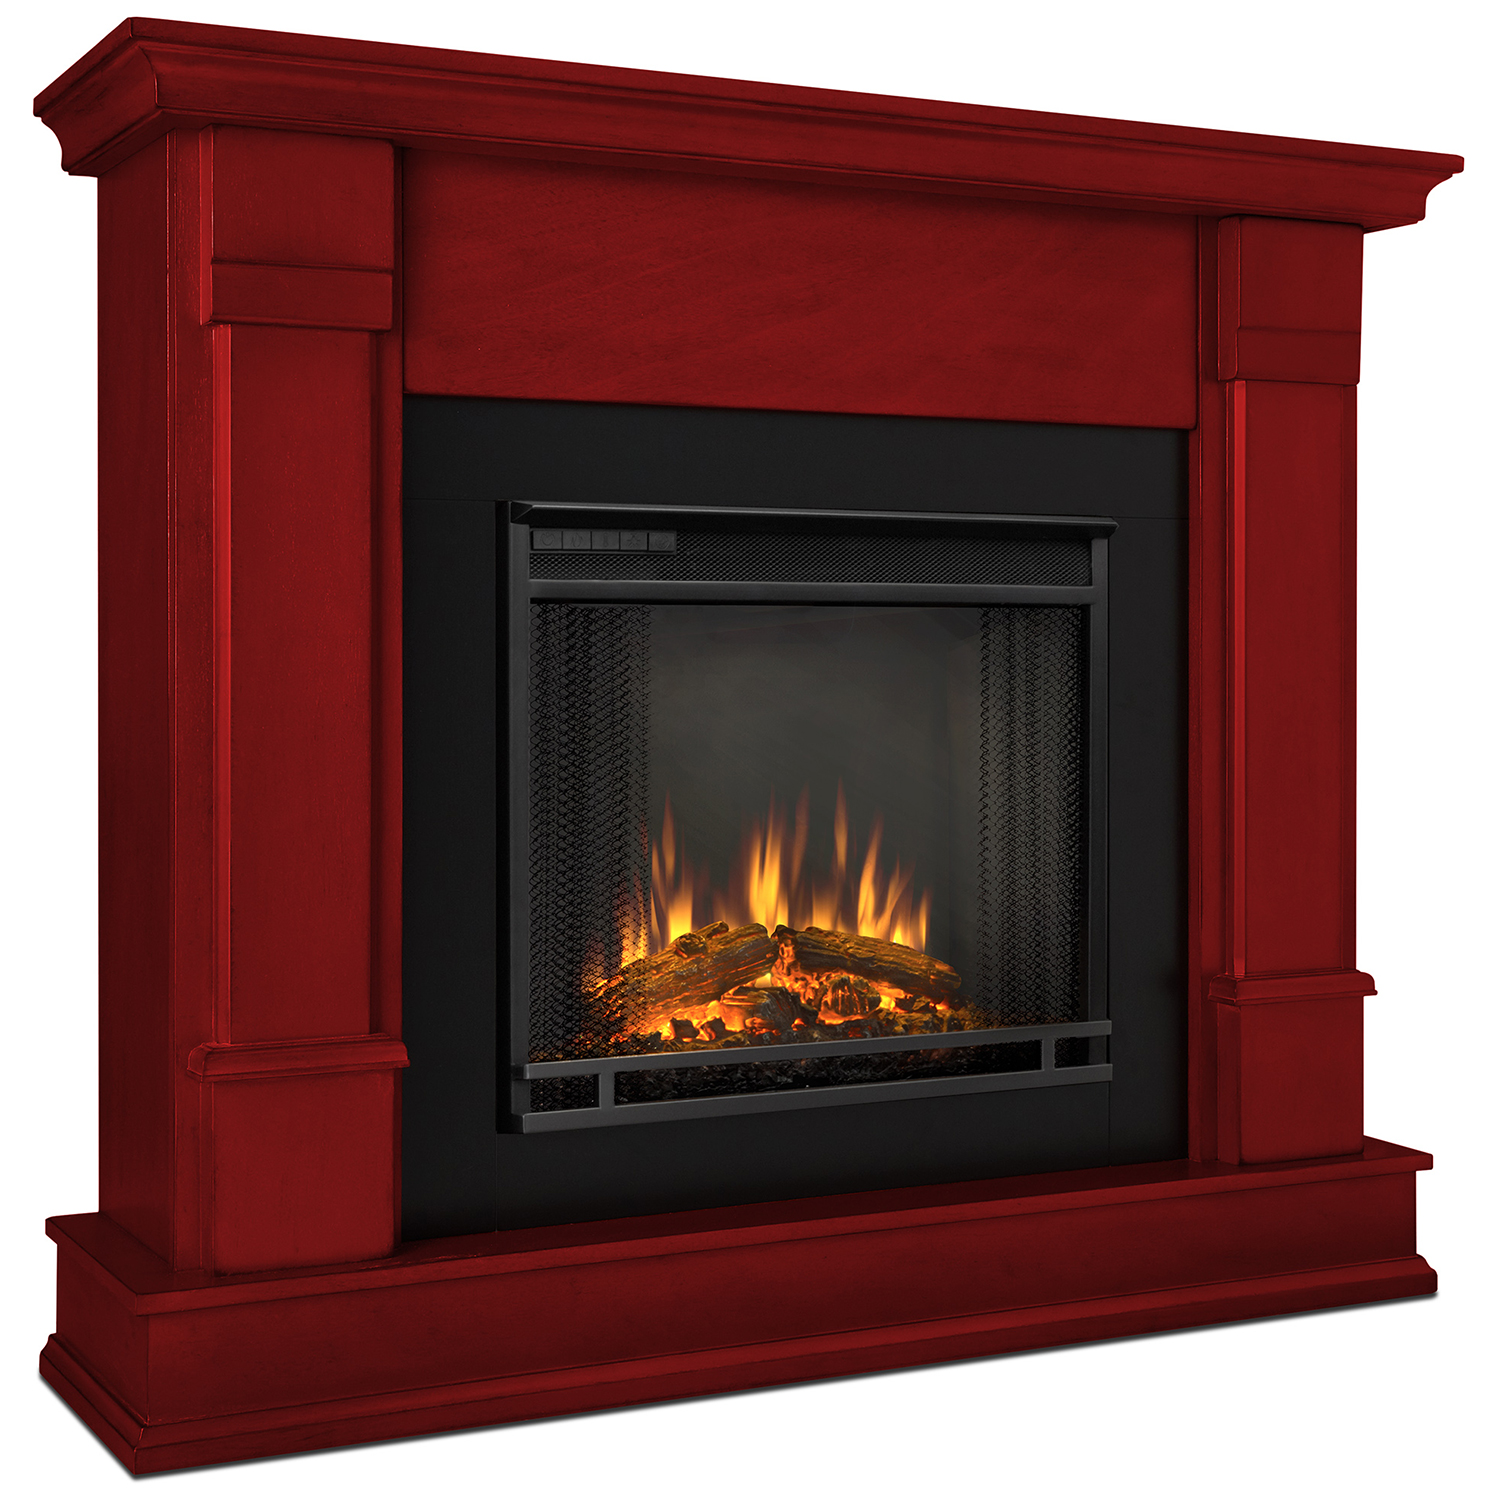 Electric Fire Place Electric Fireplace Electric Fireplace Suppliers And At Alibabacom Be Modern